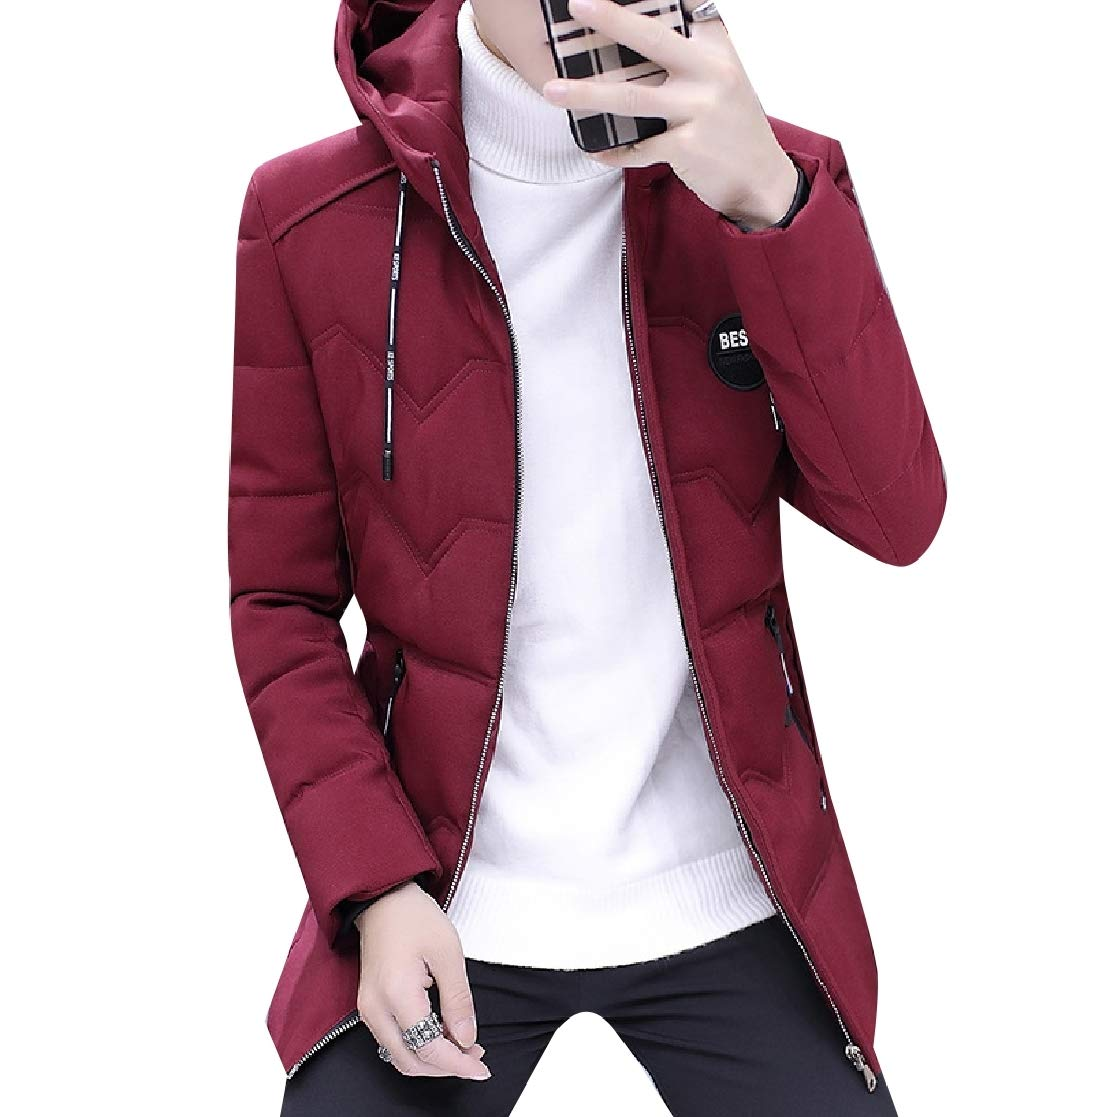 YUNY Mens Solid-Colored Leisure Warm Thick Oversize Down Jacket 9 S